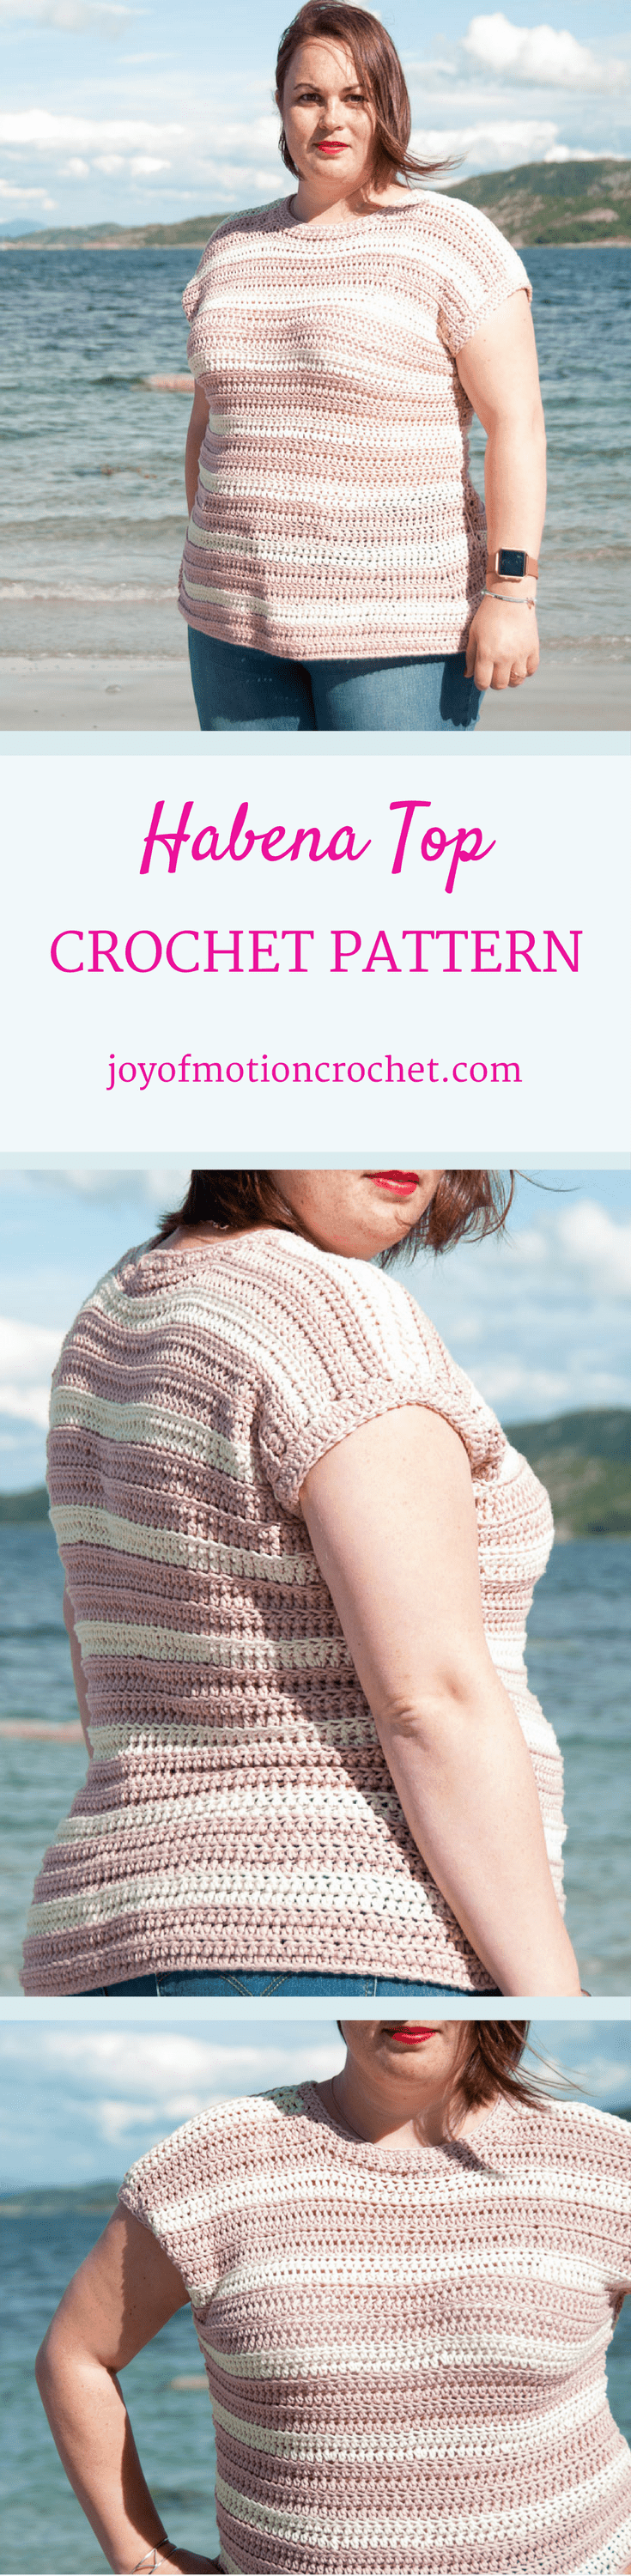 The Habena Top Crochet pattern. Intermediate crochet pattern. Woman's crochet top. Intermediate Sweater. Crochet top. Beginner crochet top. Garment crochet pattern. Crochet clothing. Crochet pattern woman's.